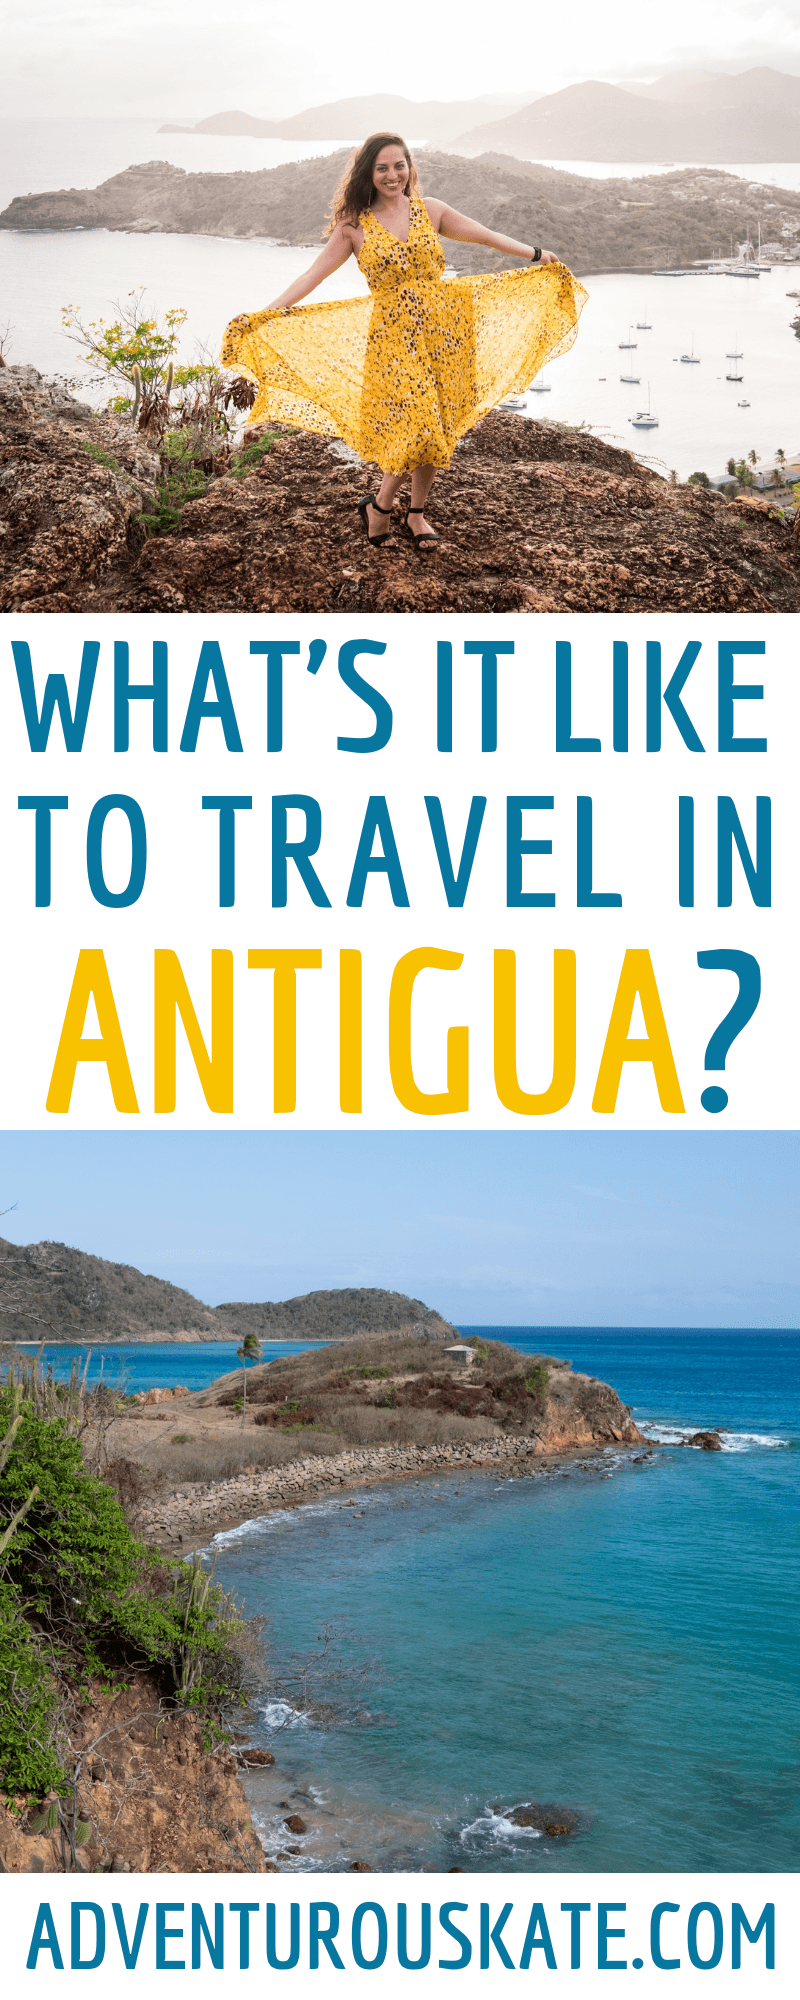 Pinterest graphic: What it's like to travel Antigua and Barbuda?